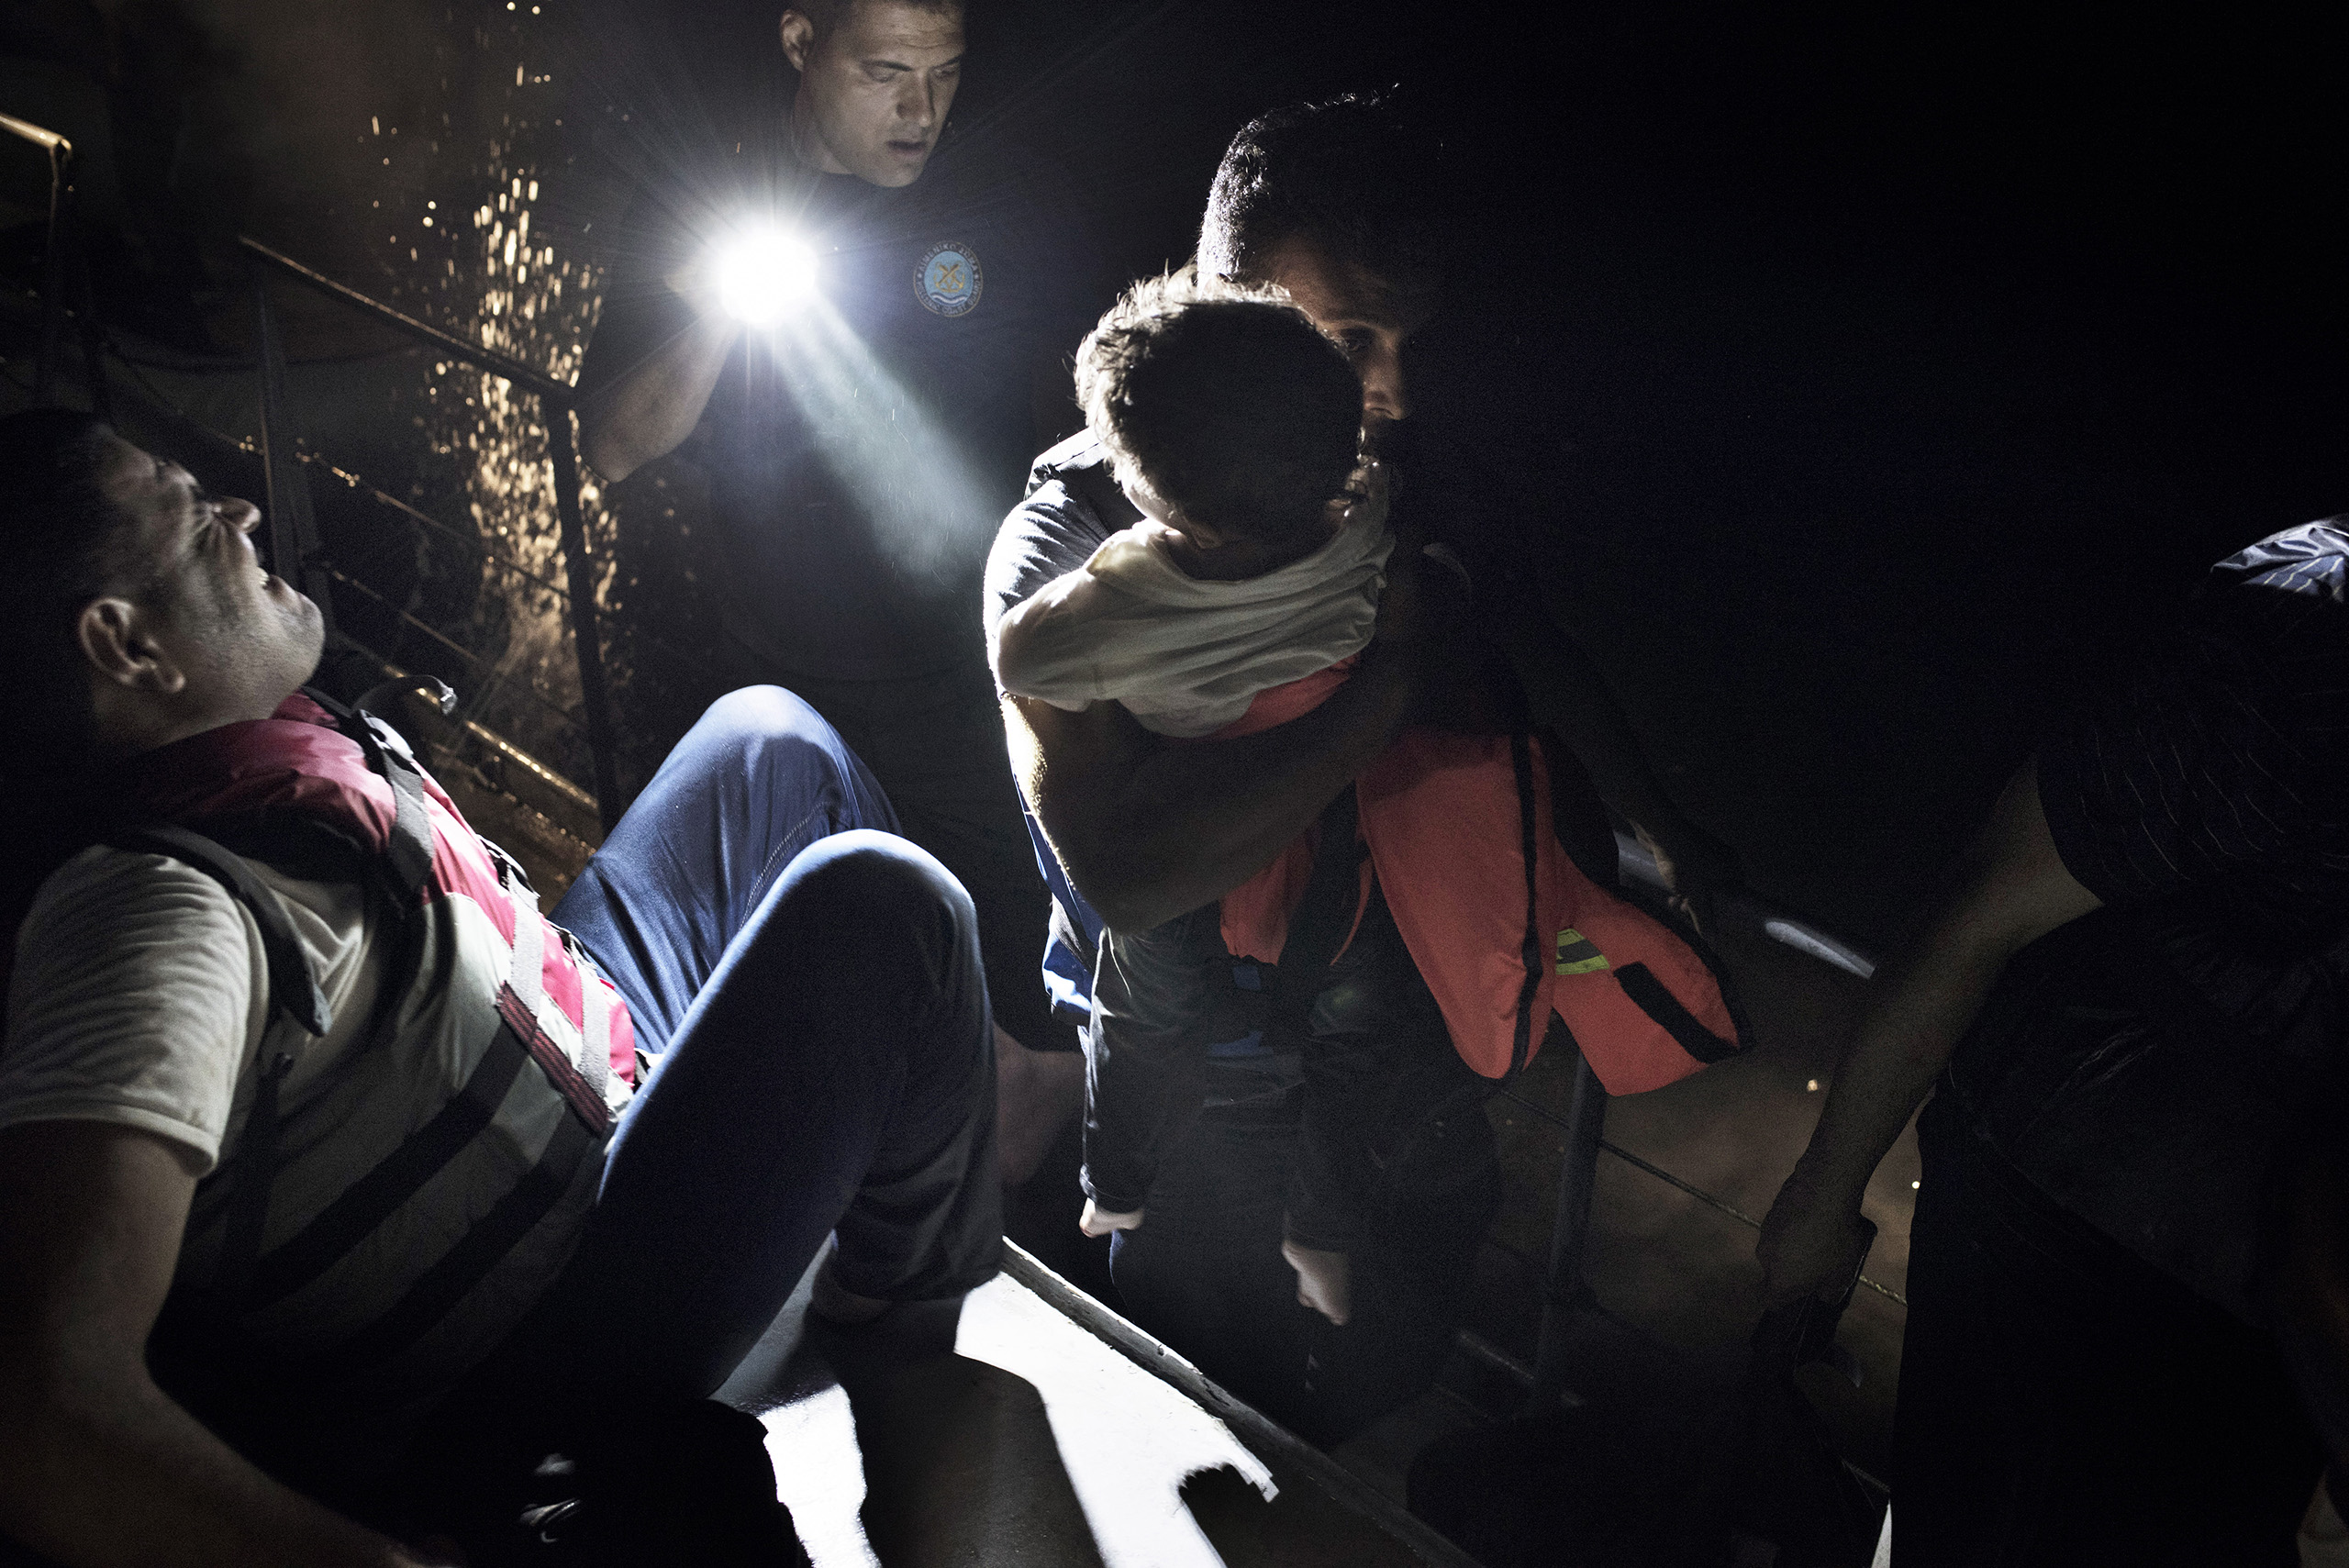 A Greek coast guard lights the way for a group of Syrian migrants as they move to the front of a Greek coastal patrol vessel after being rescued from the waters near the border between Greece and Turkey. Sept. 7, 2015.